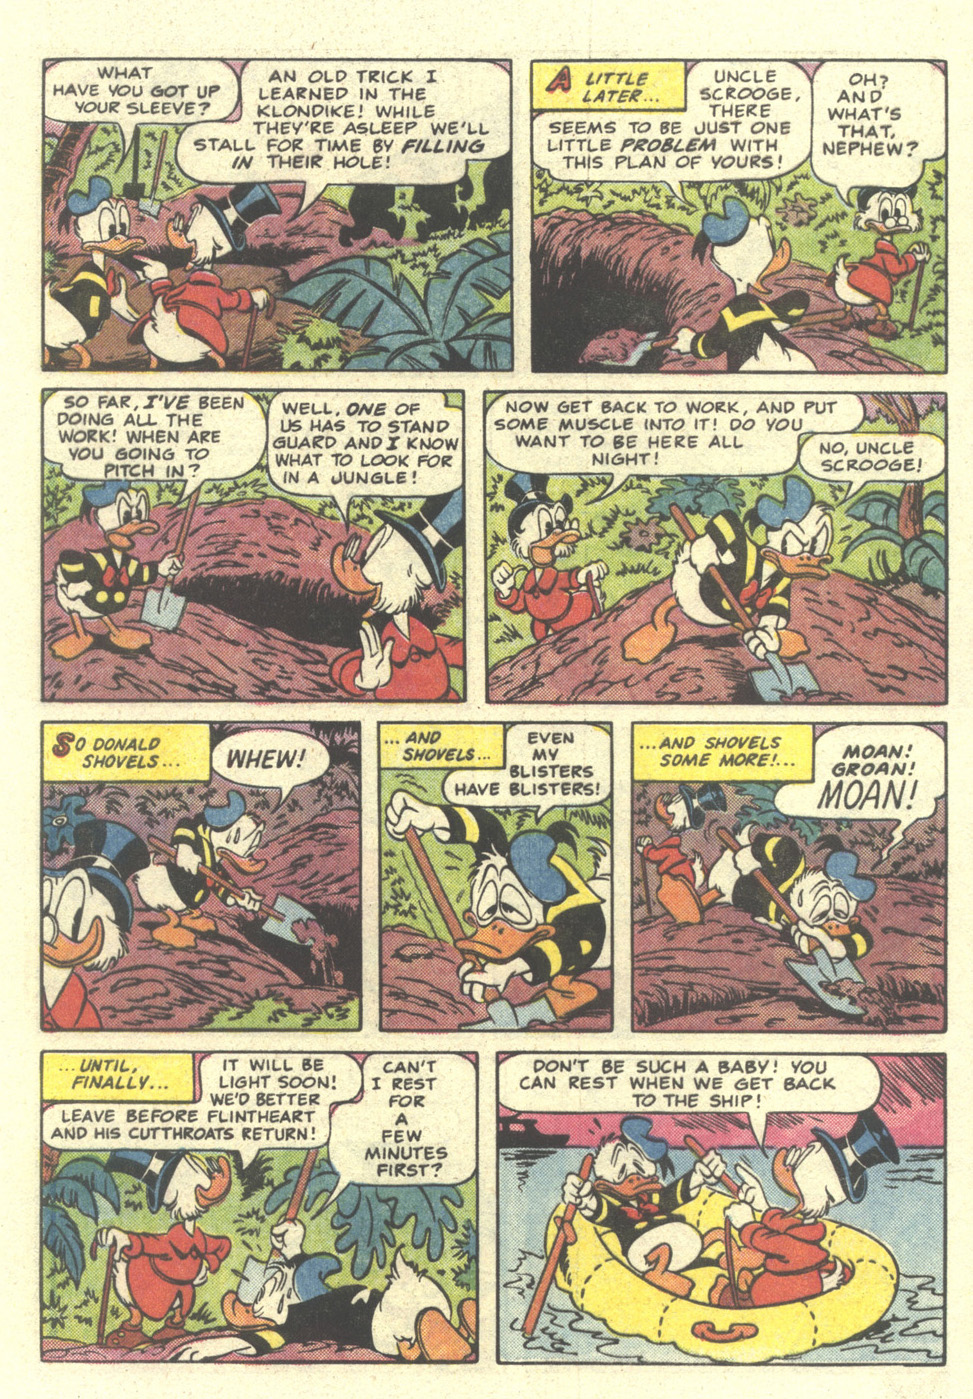 efree.com/uncle-scrooge-1 #193 - English 9